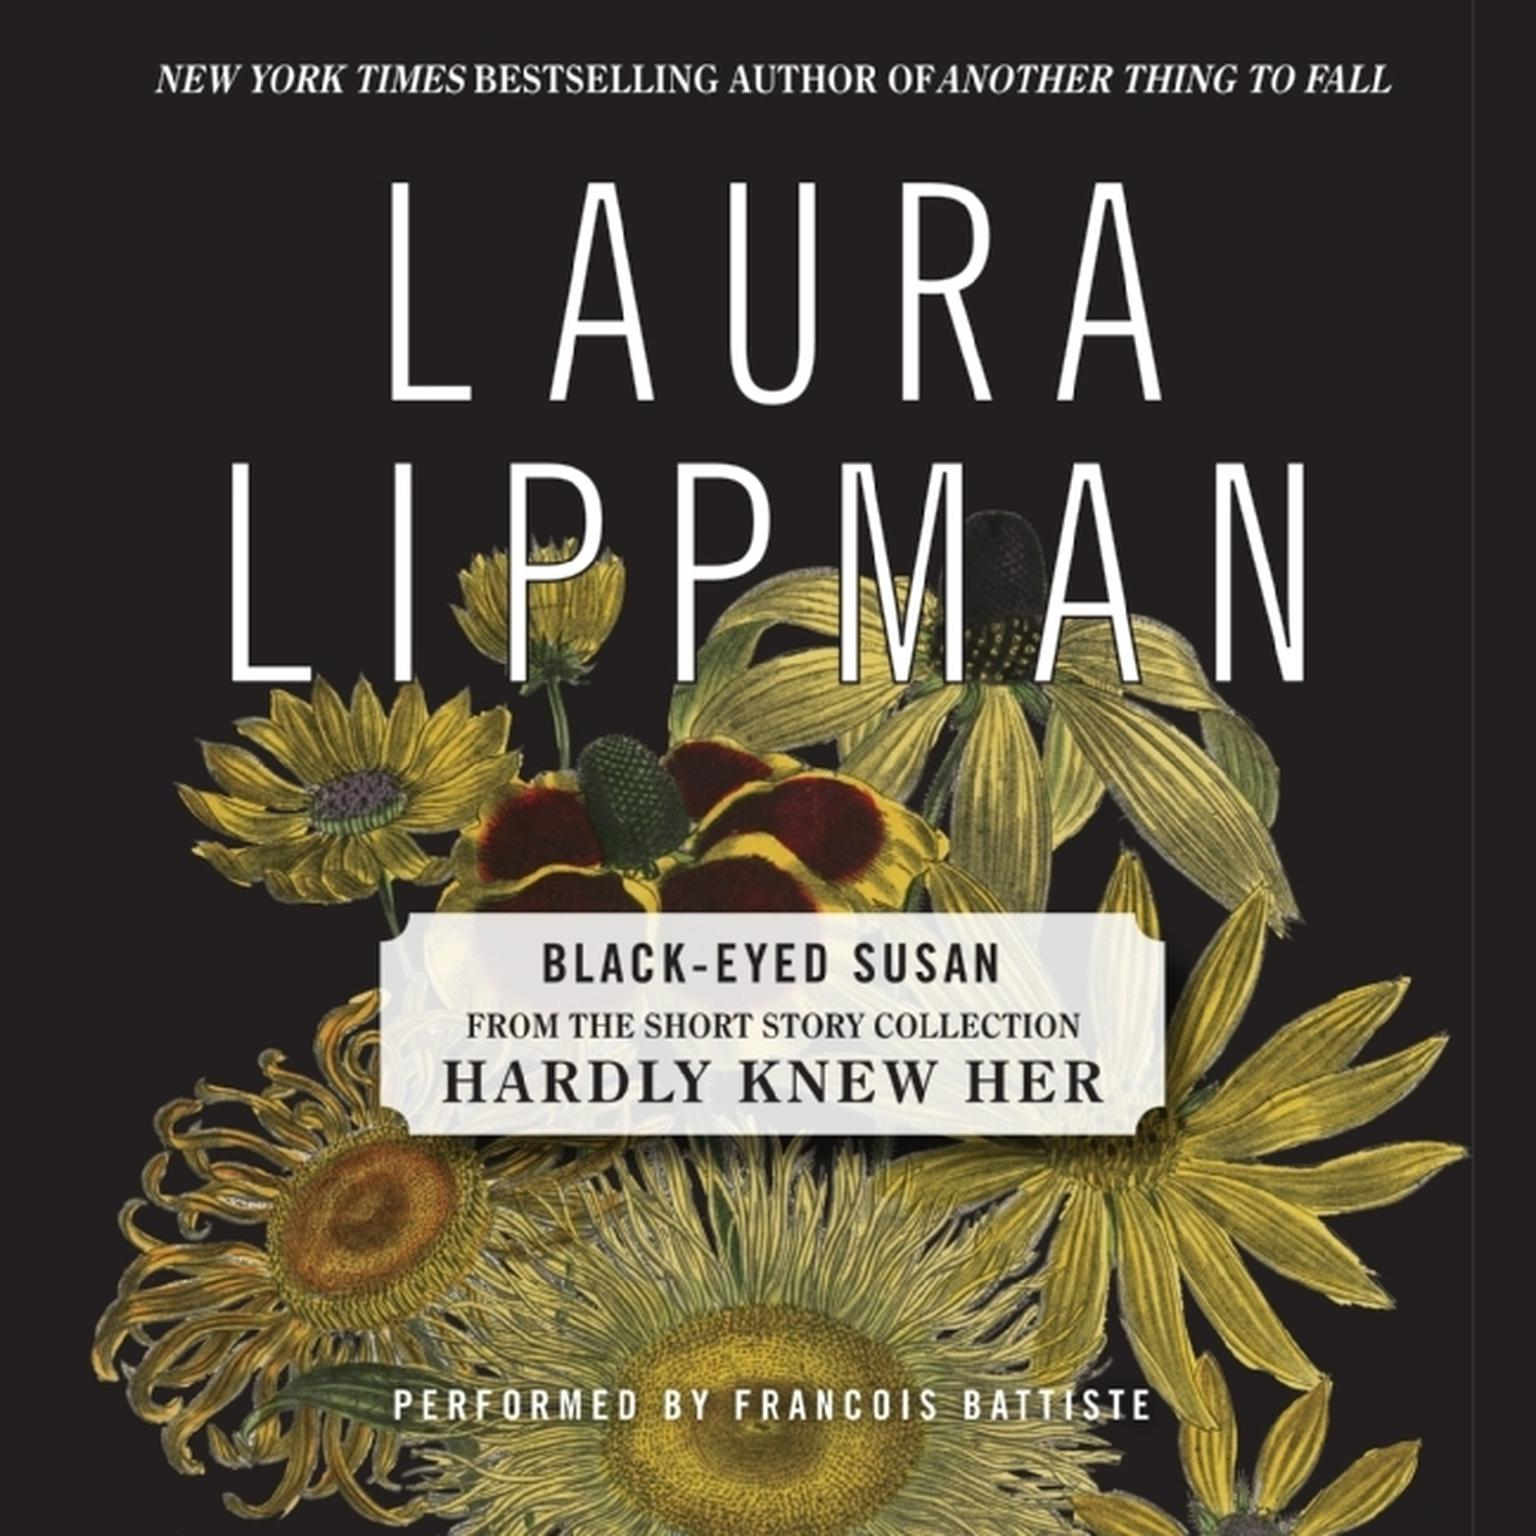 Printable Black-Eyed Susan: From the Short Story Collection Hardly Knew Her Audiobook Cover Art